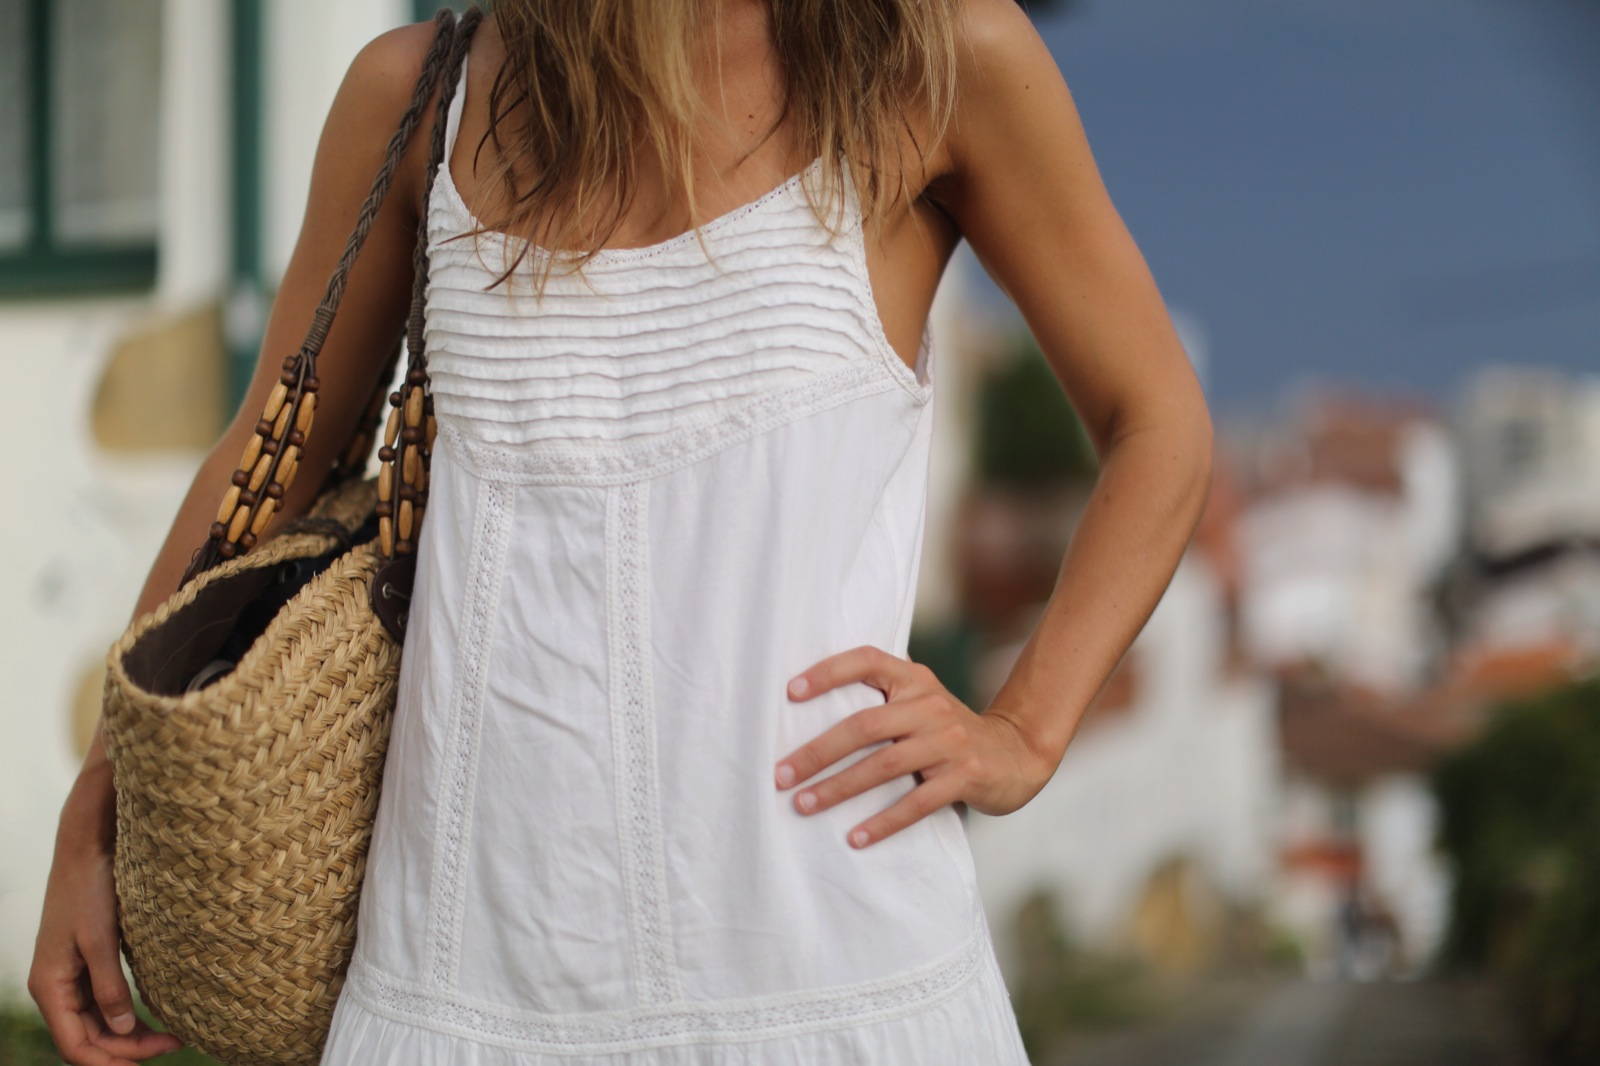 Clochet_suiteblanco_white_boho_dress_zara_fedora_hat_straw_basket_07